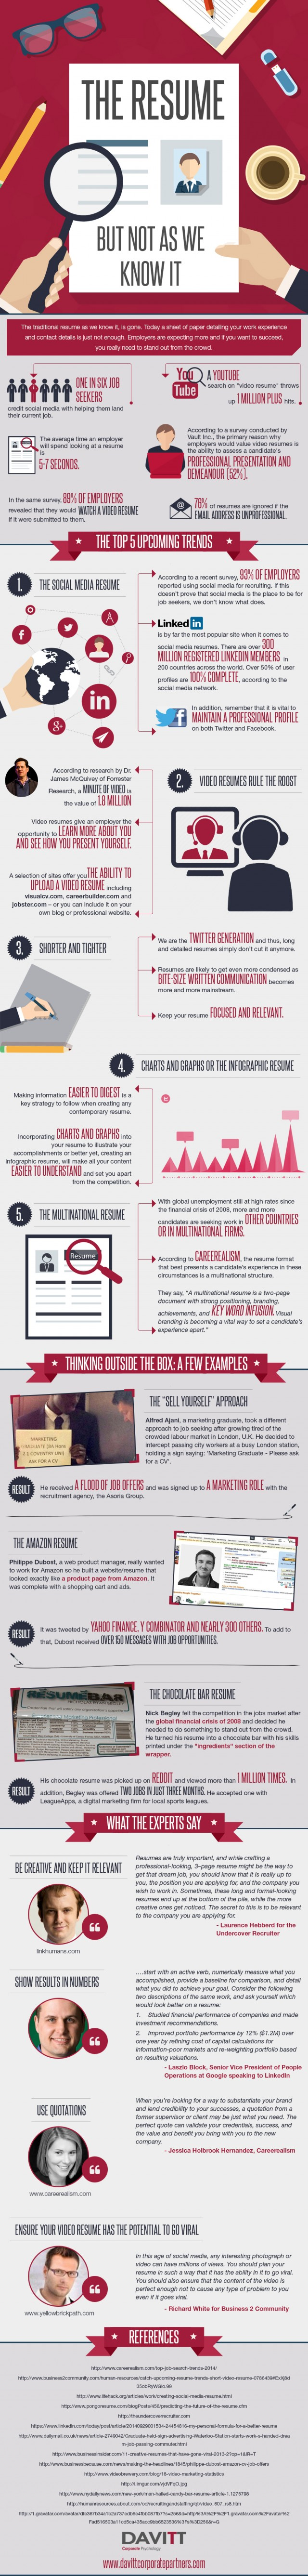 The Resume - But Not as We Know It [Infographic]